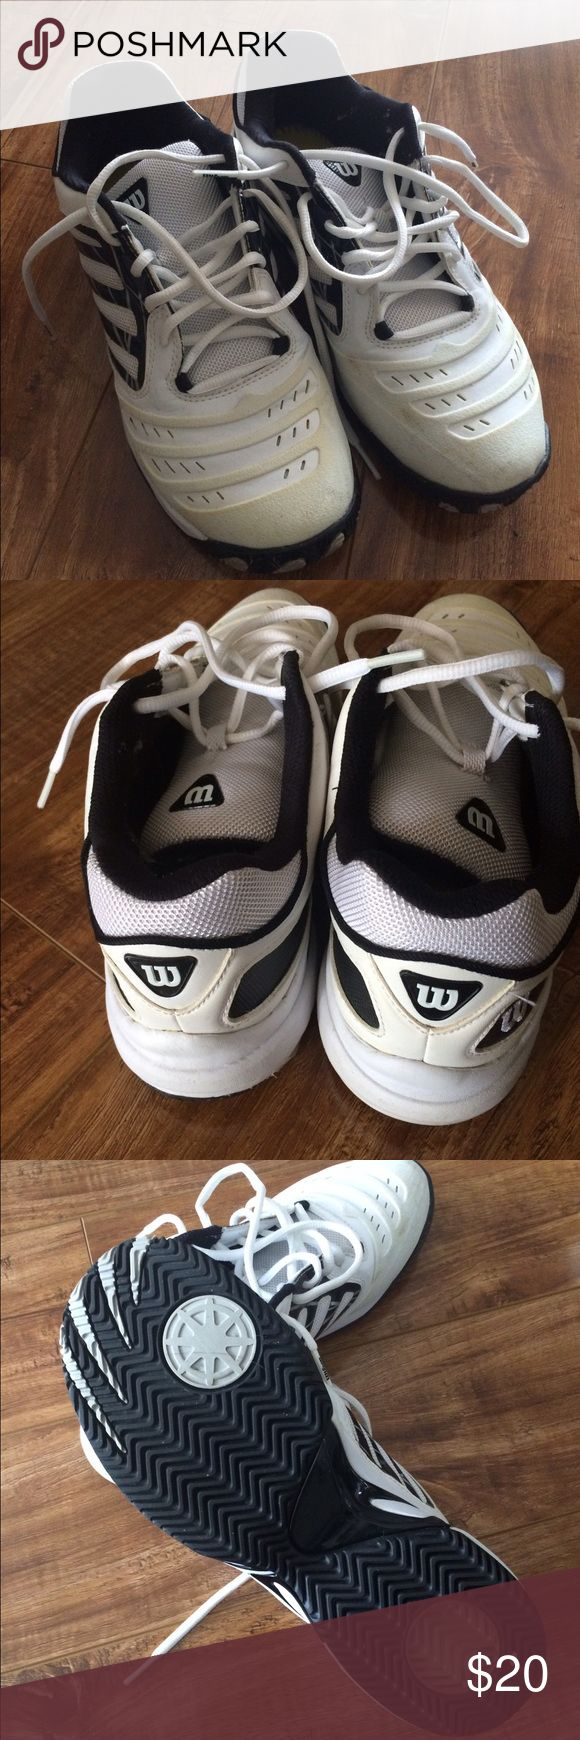 Men's Wilson Tennis Shoes Like brand new!  White pair of men's Wilson tennis shoes. Size 7.5.  A little yellow showing on the plastic part on the toes of the shoes.  So selling super inexpensive. Wilson Shoes Sneakers